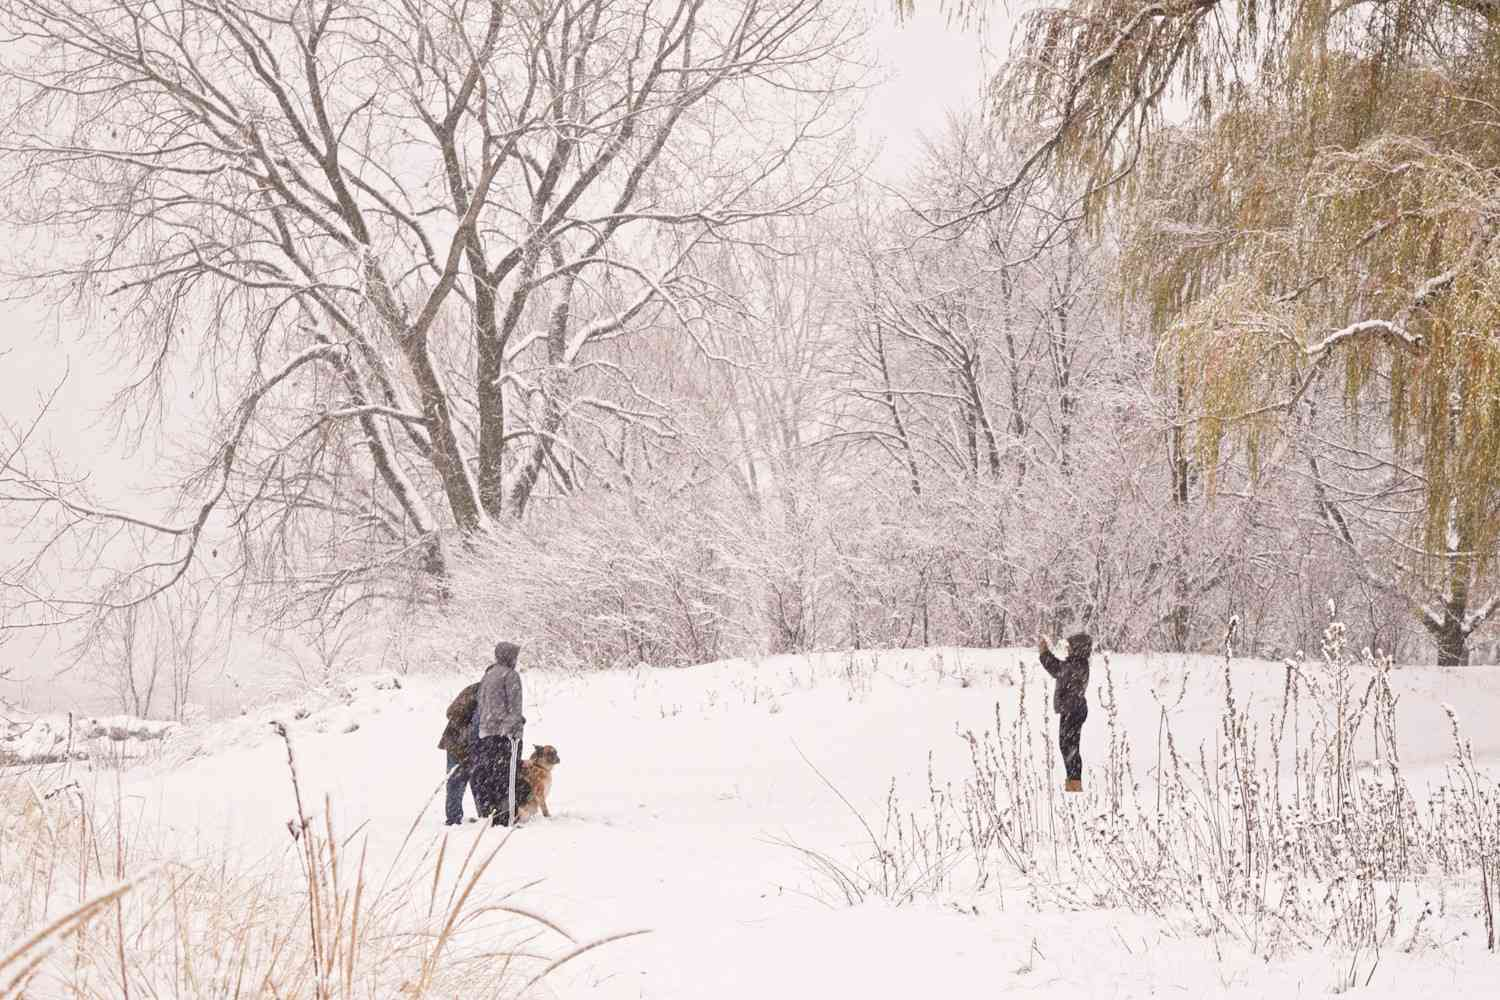 walking the dog in a snowstorm